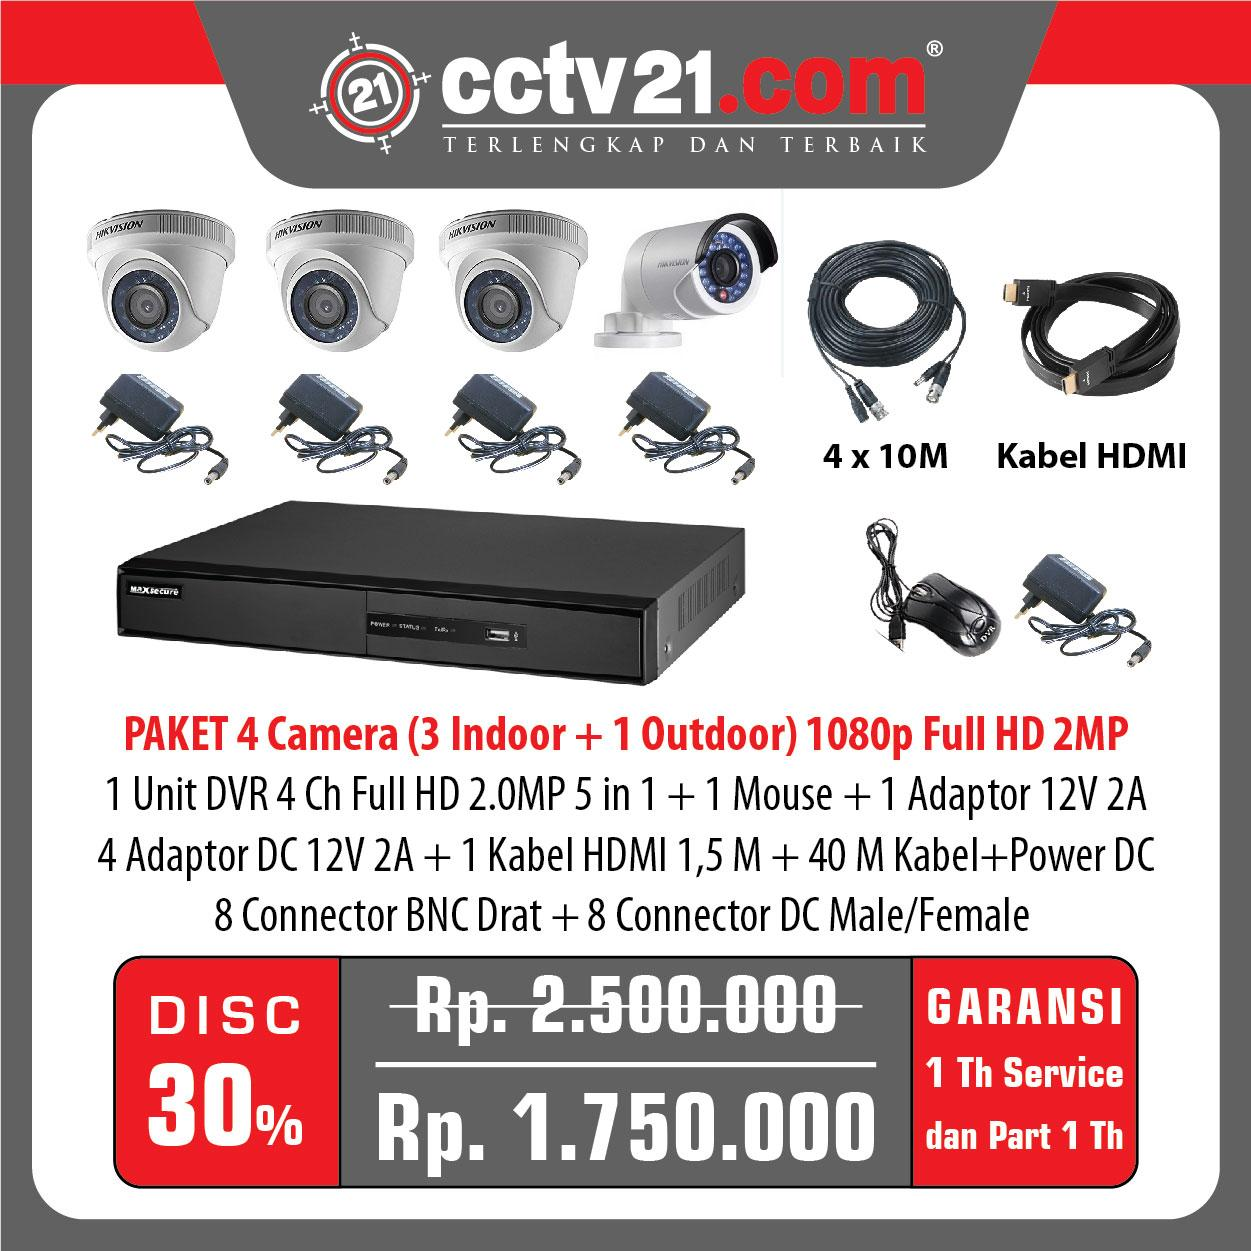 Promo Paket  4 CCTV (Full HD 2MP) 3 Indoor-1 Outdoor +4 Adp 2A+40mtr Kabel -DVR Full HD 4Ch 5 in 1